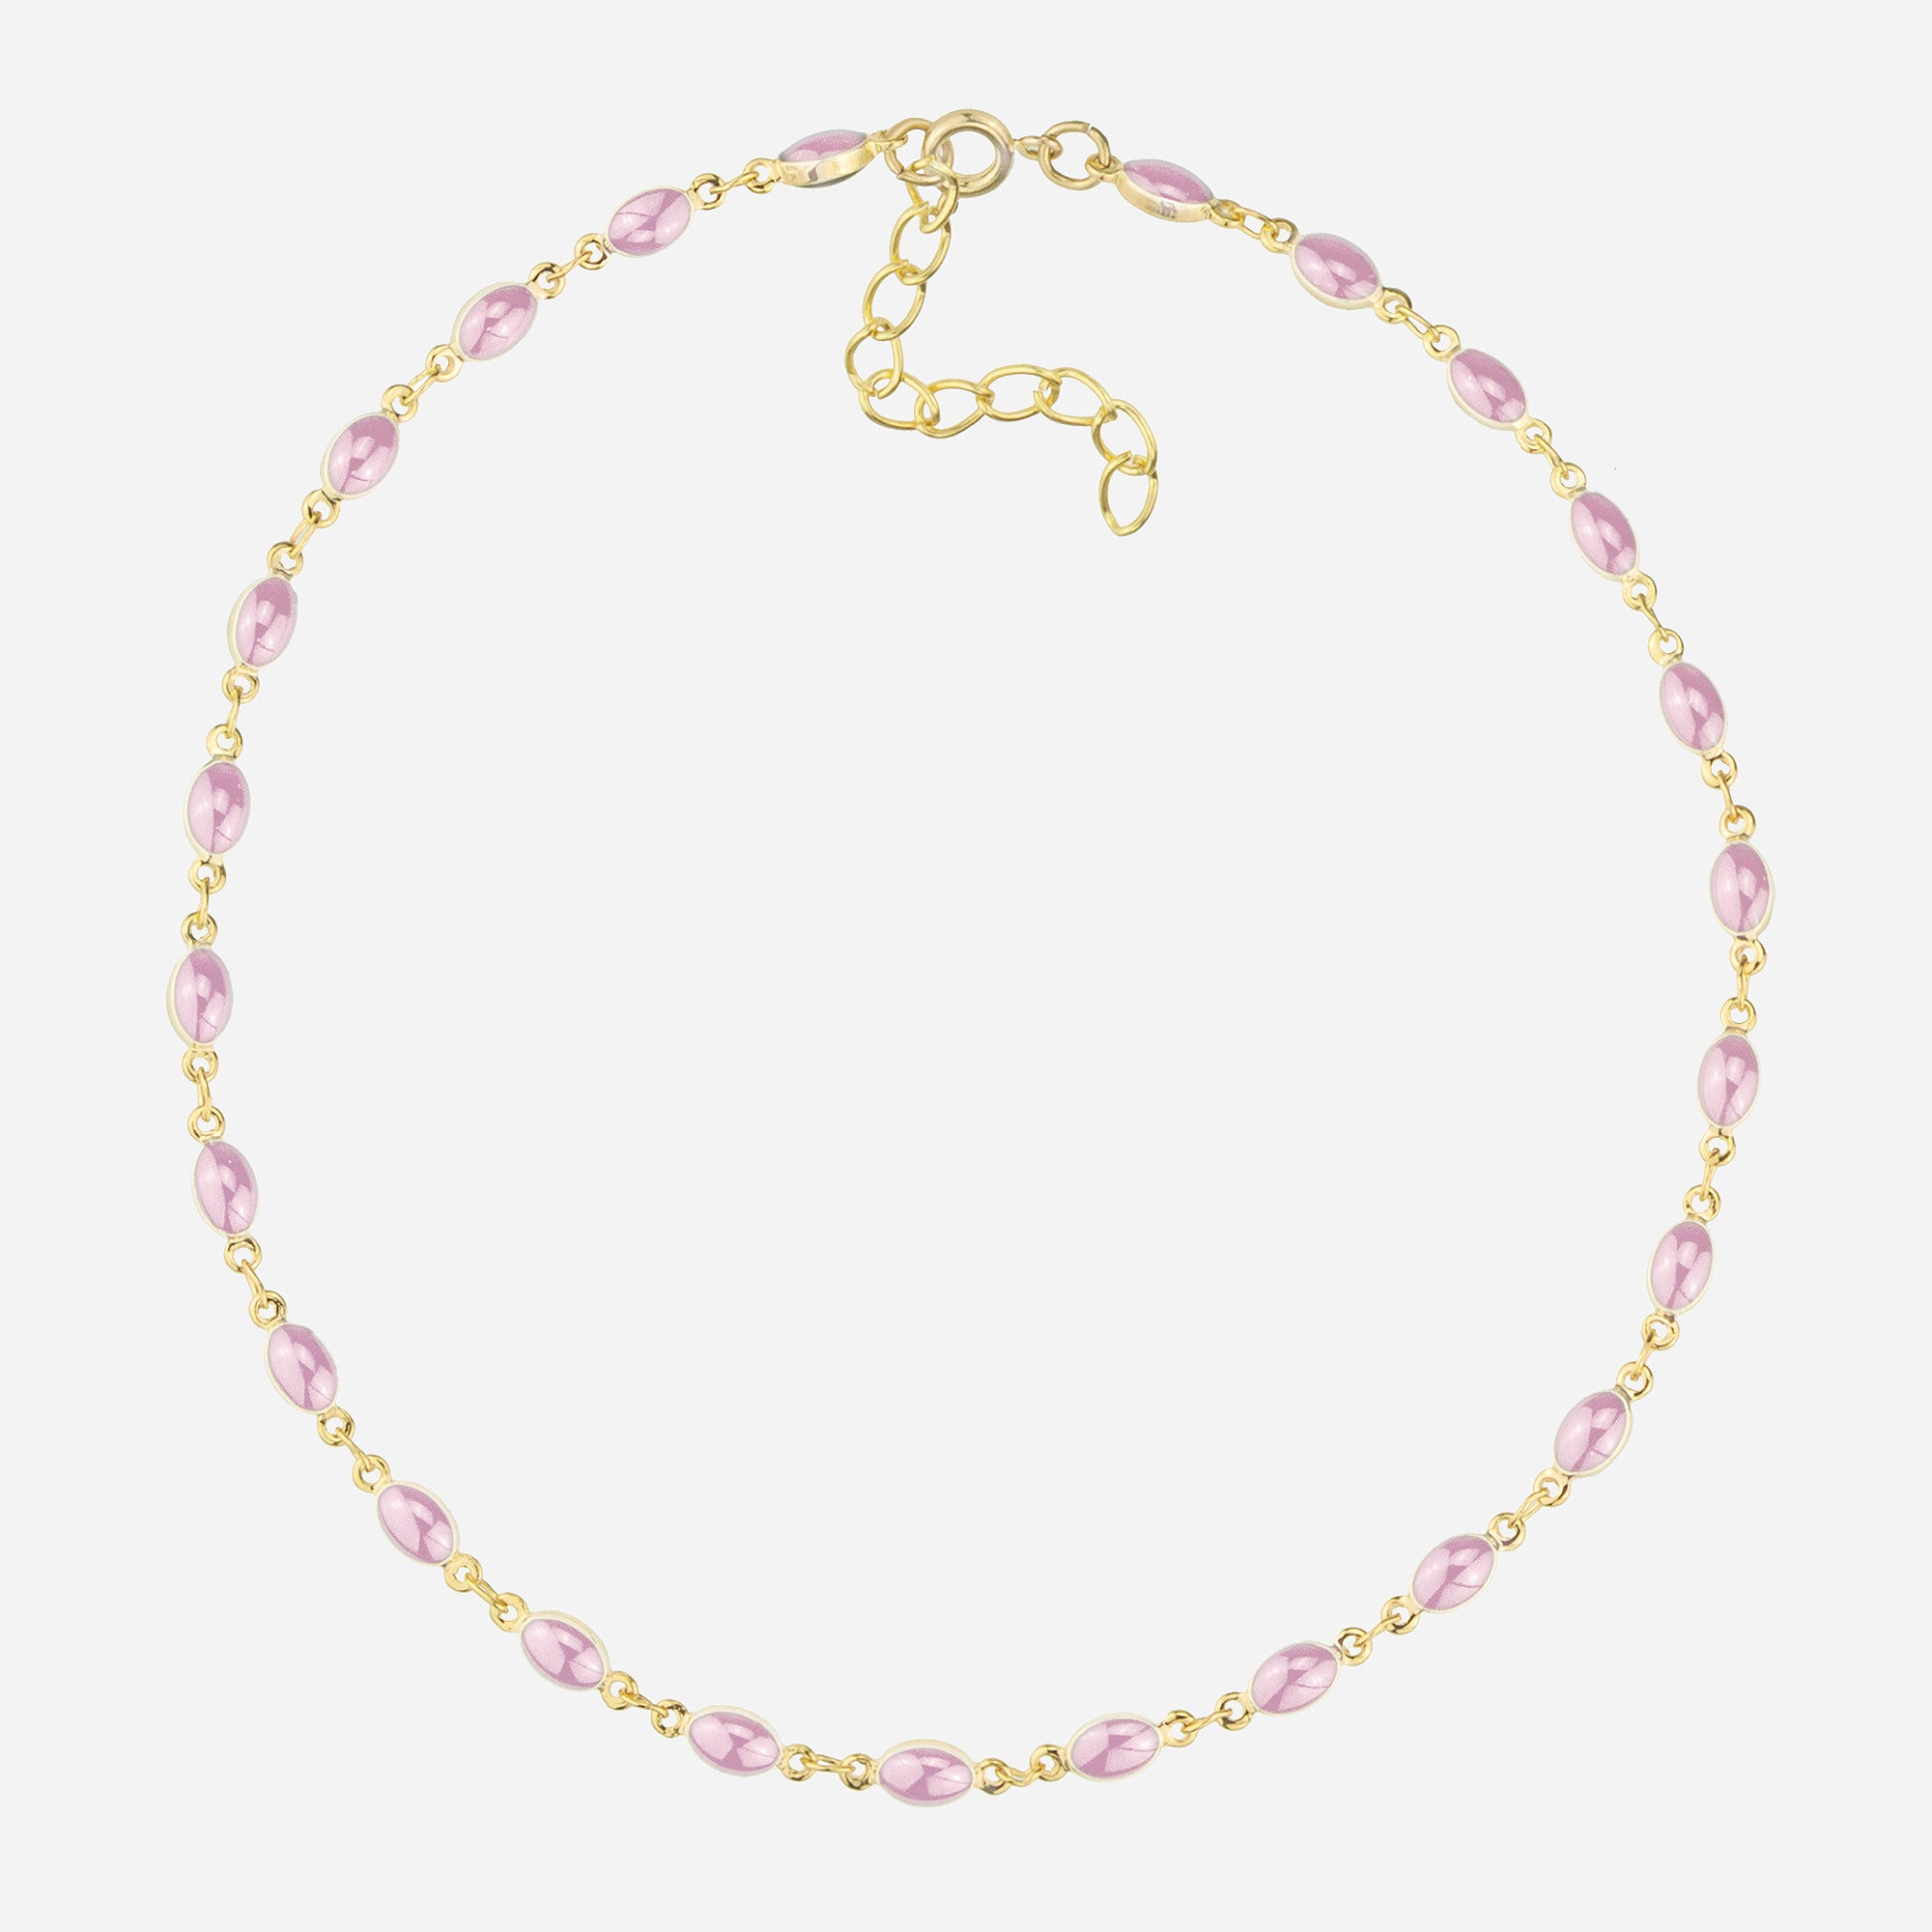 CLAUDIA Chain Choker Necklace